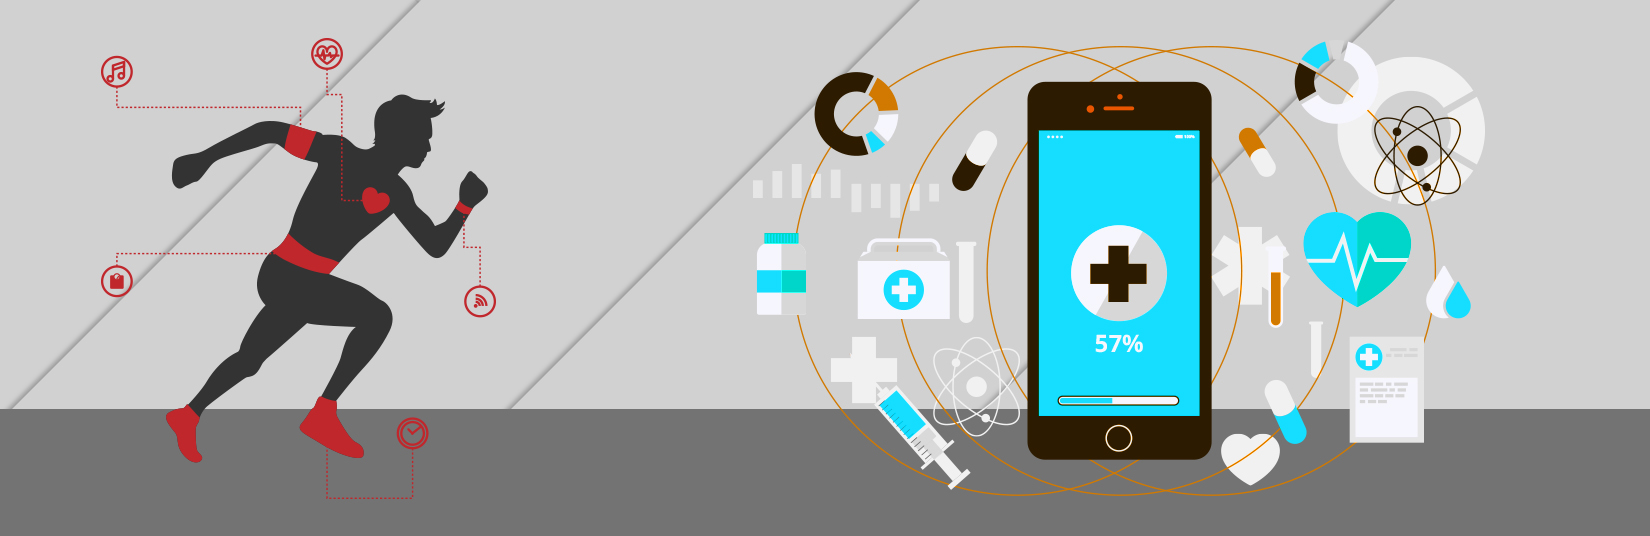 IoT-based healthcare apps